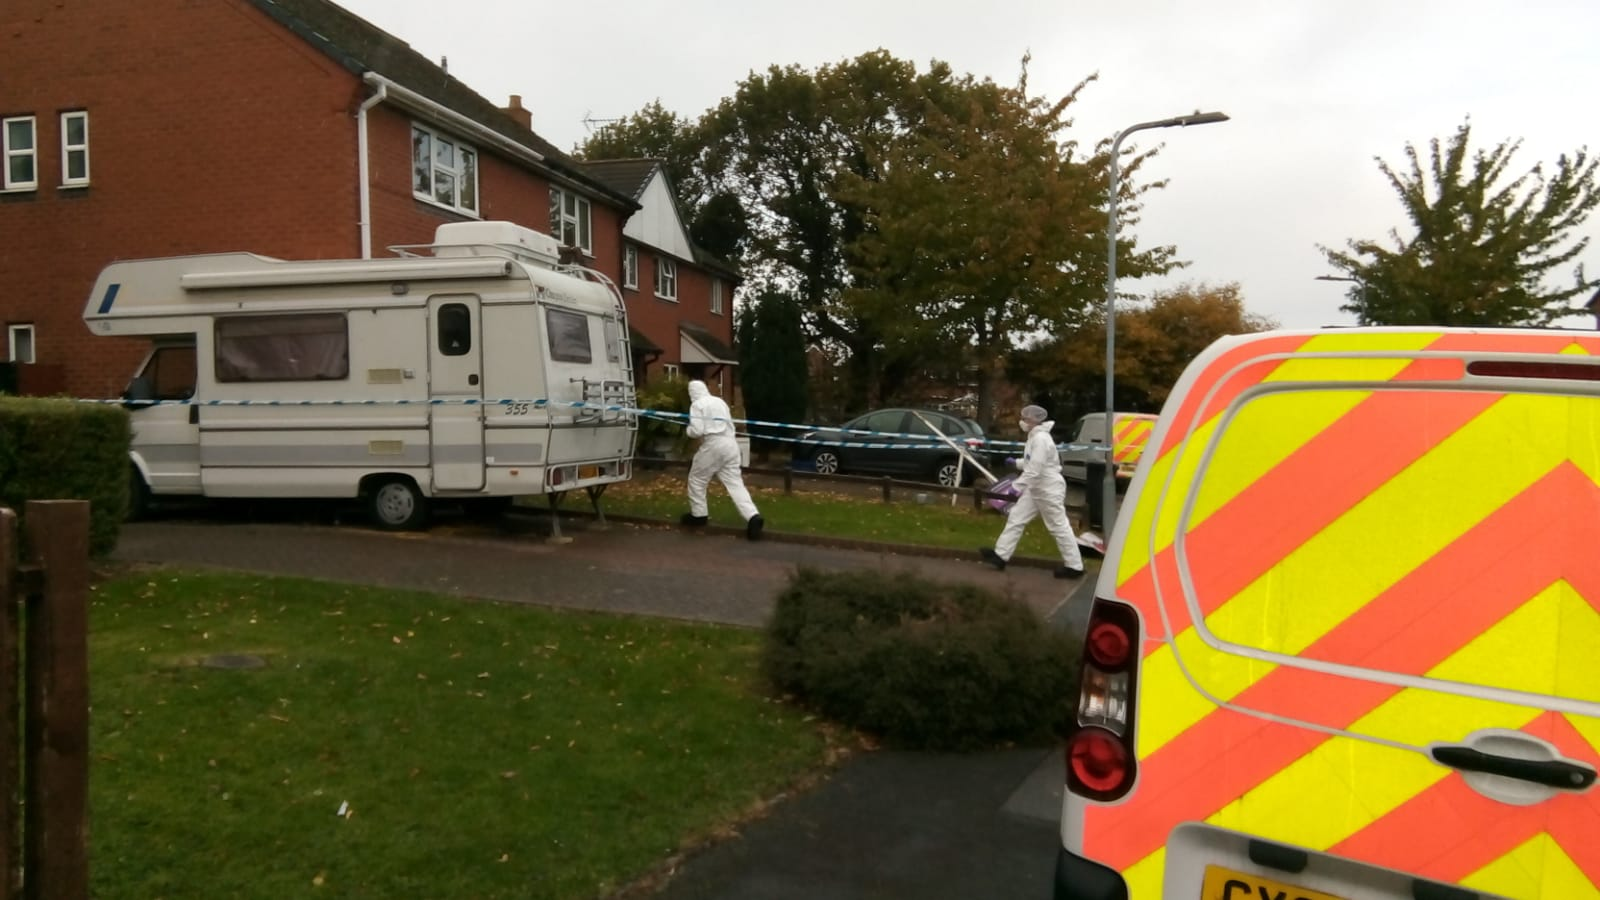 Forensic teams seen entering the home in Pen-y-Ffordd on Thursday morning